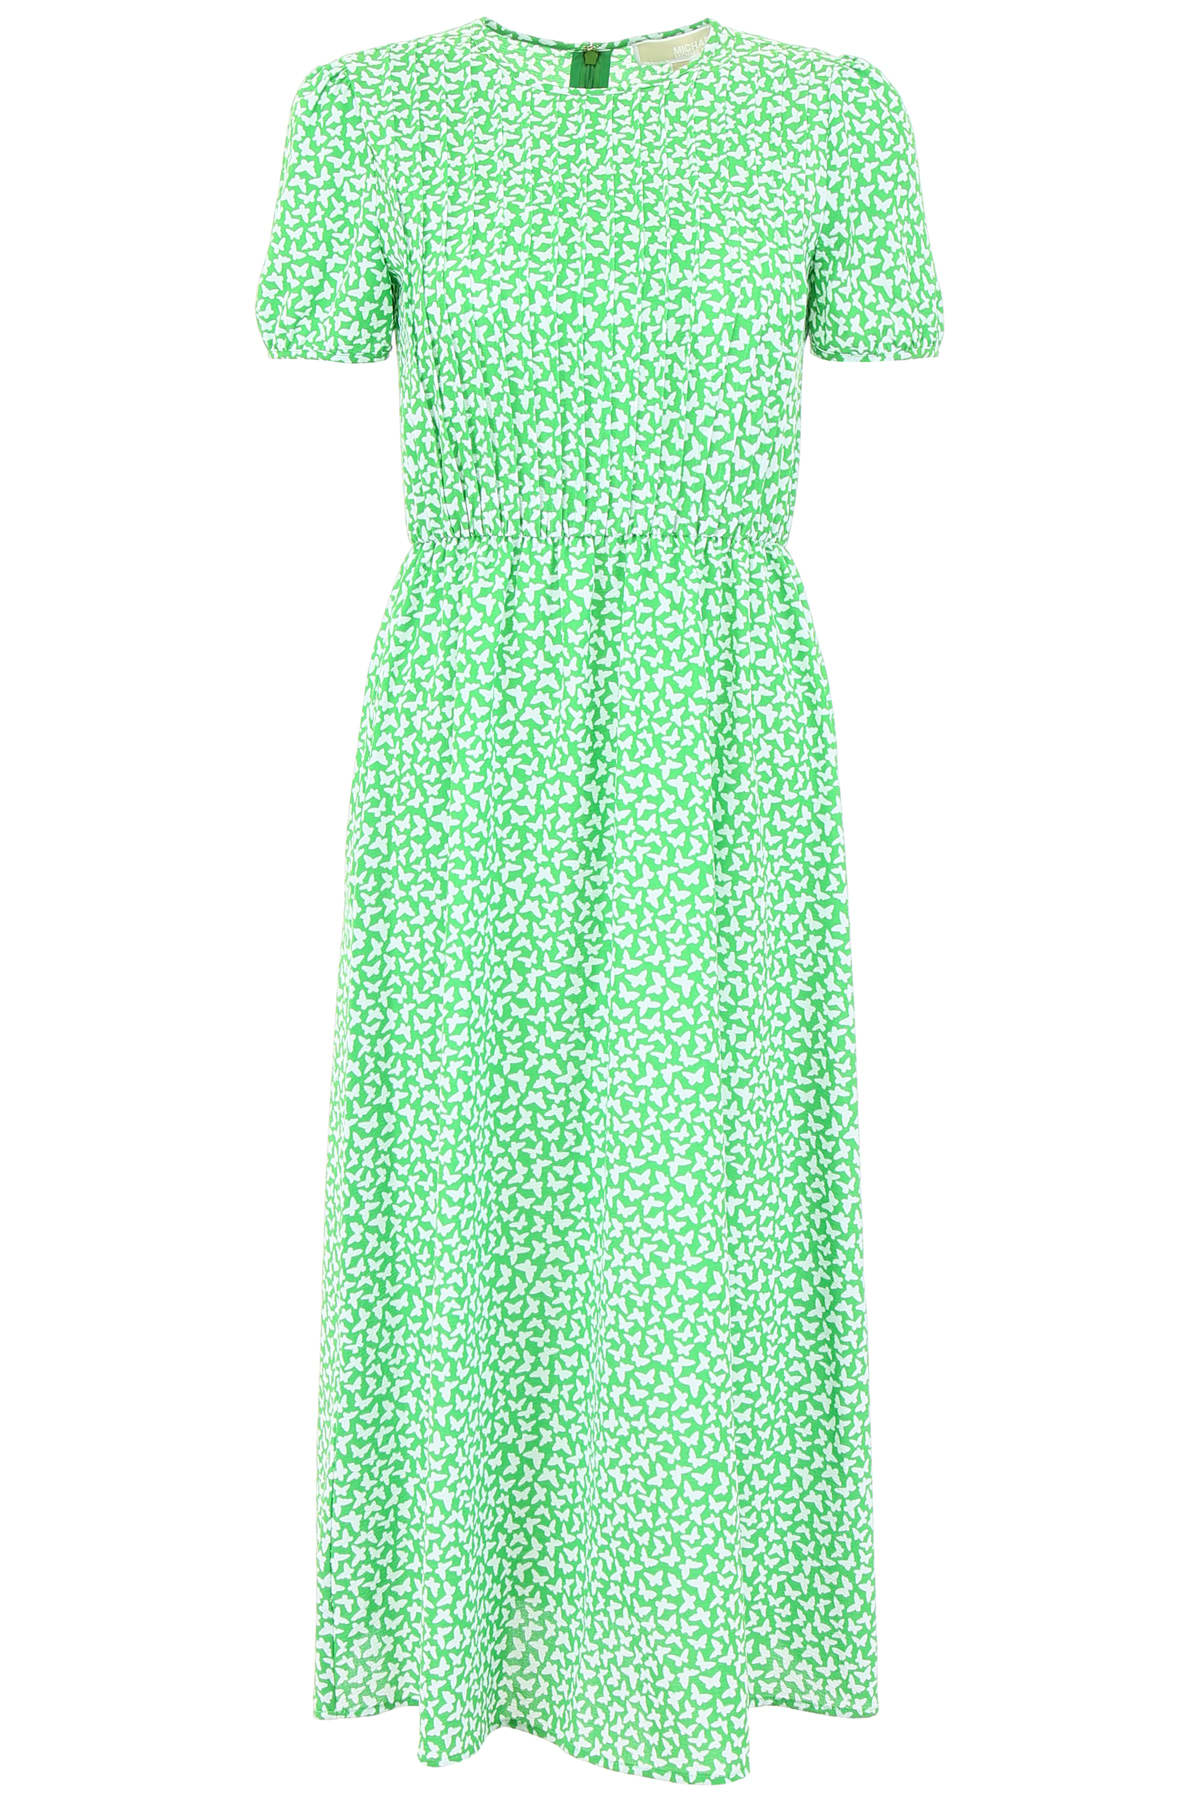 MICHAEL Michael Kors Butterfly Print Dress